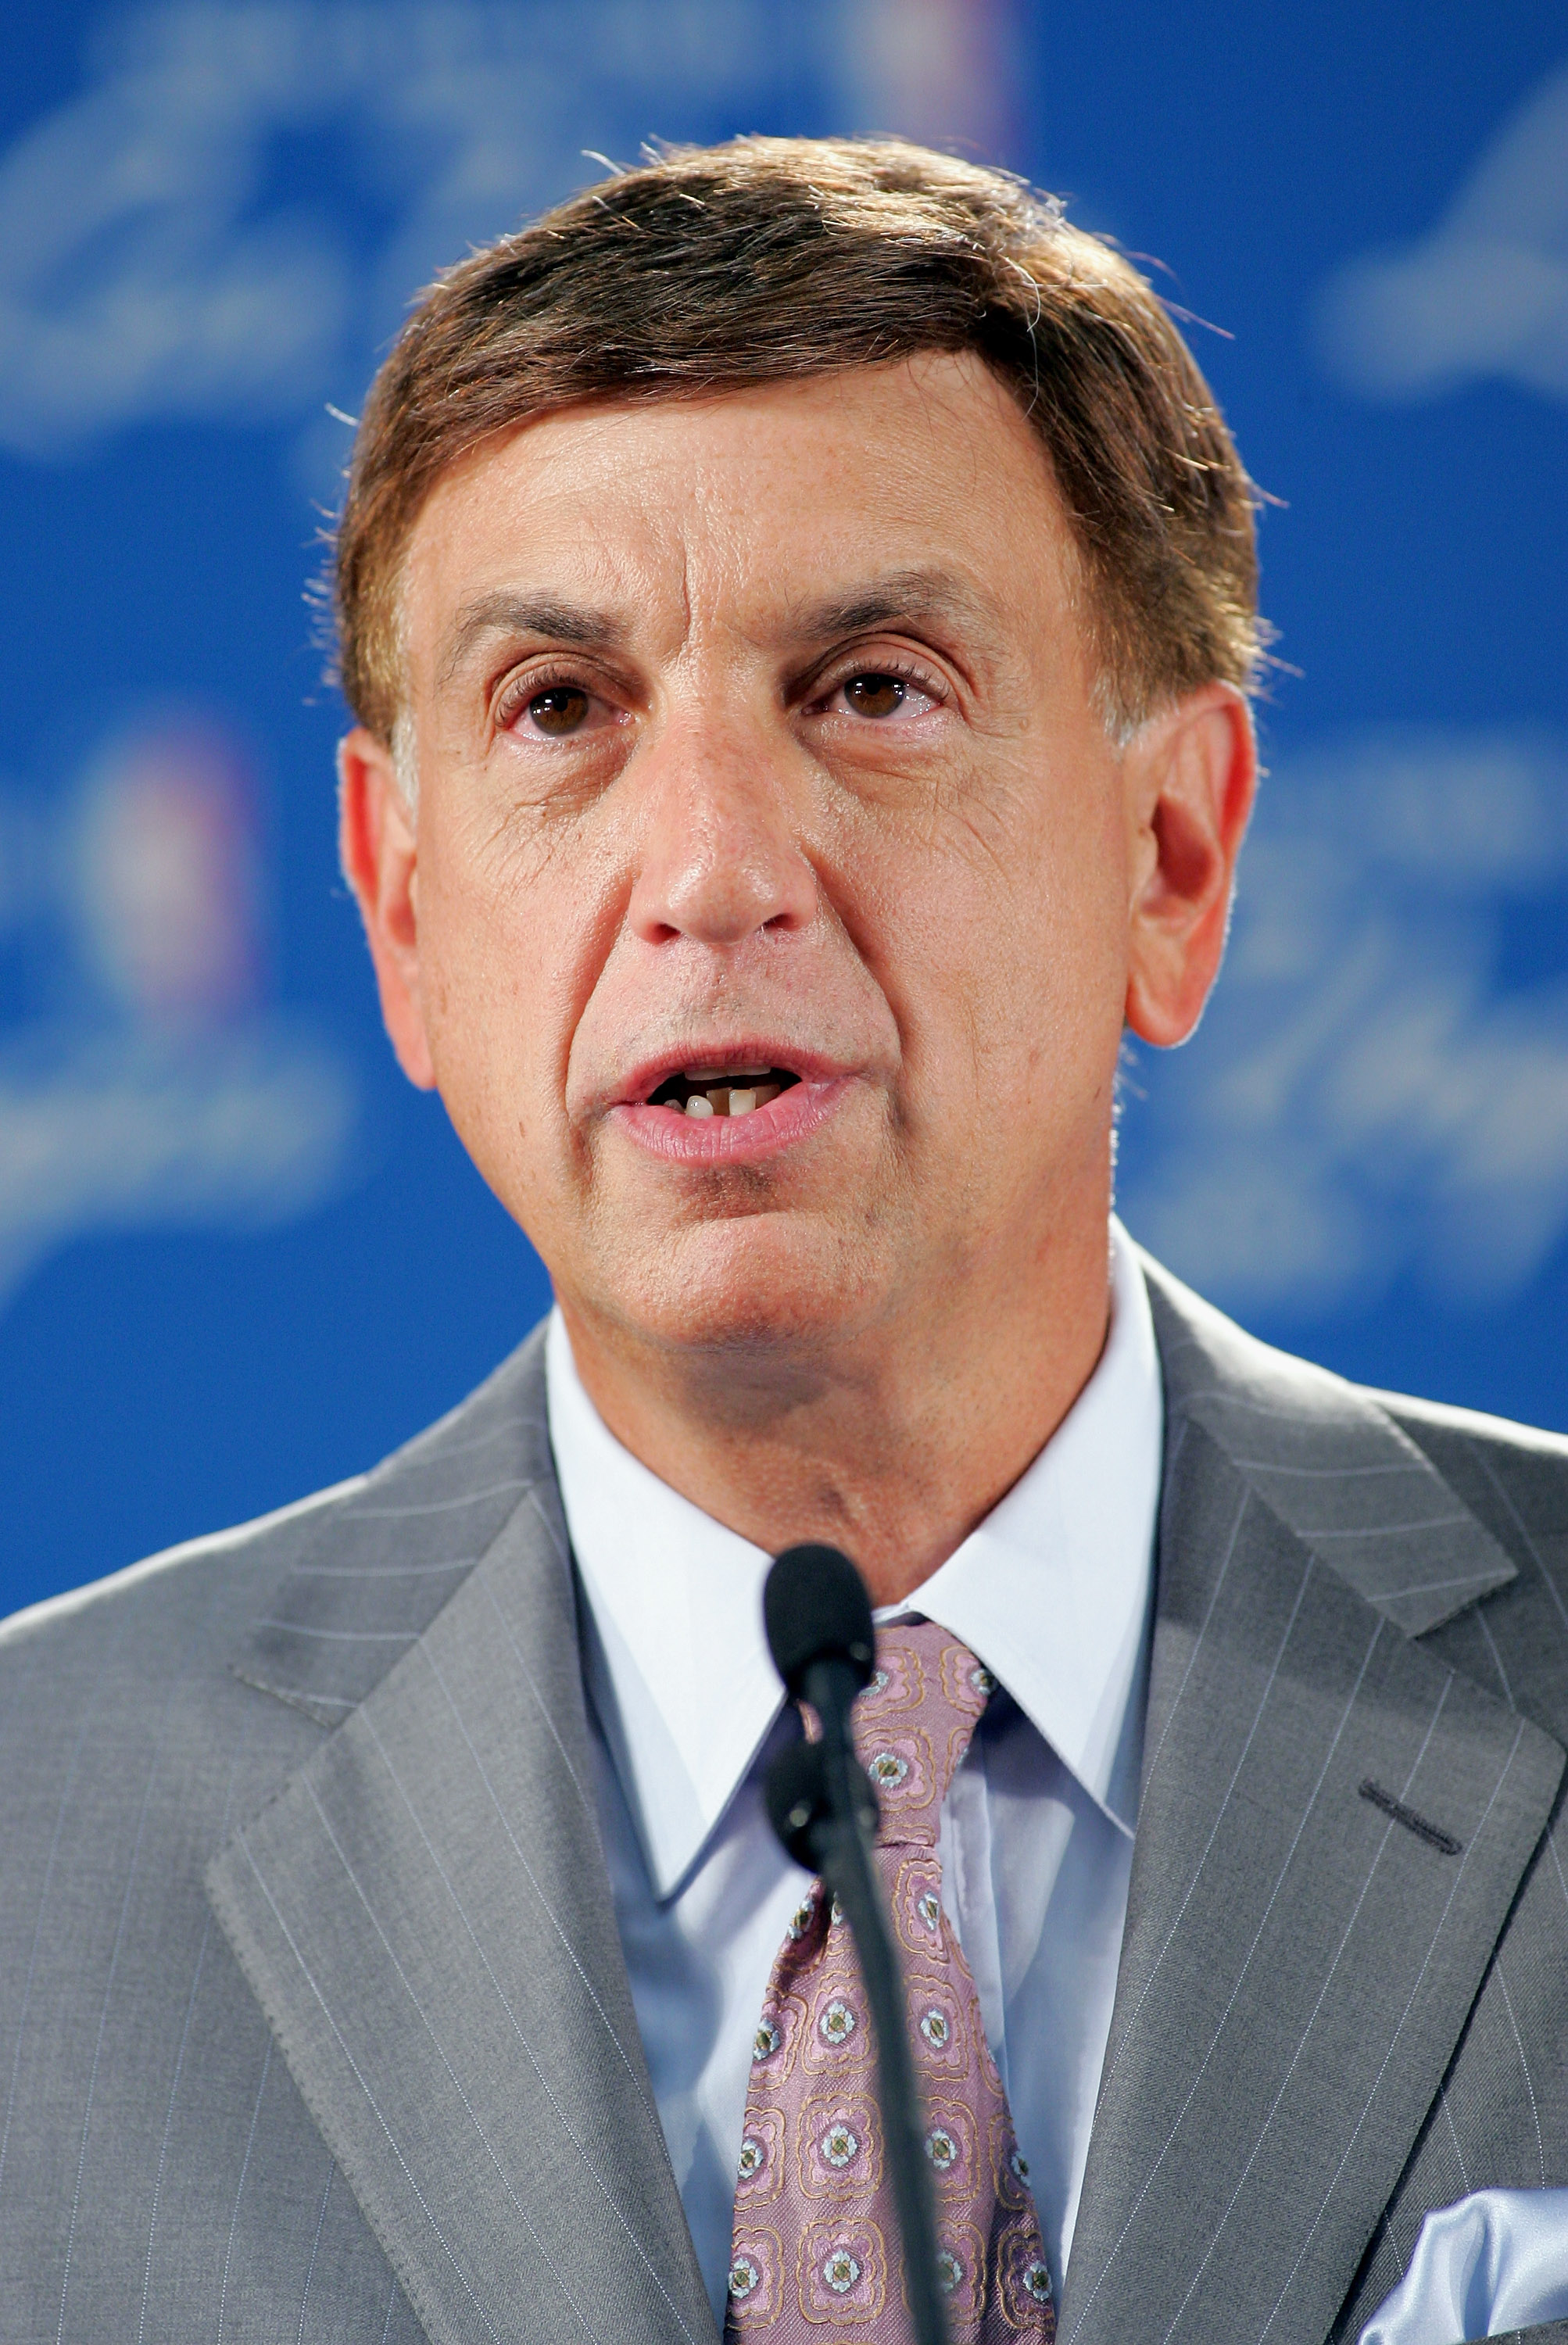 LAS VEGAS - AUGUST 5:  NBA announcer for TNT, Marv Albert, speaks at a news conference announcing that the city of Las Vegas will host the 2007 NBA All-Star Game held on August 5, 2005 at the Las Vegas Convention Center in Las Vegas, Nevada. It will be th